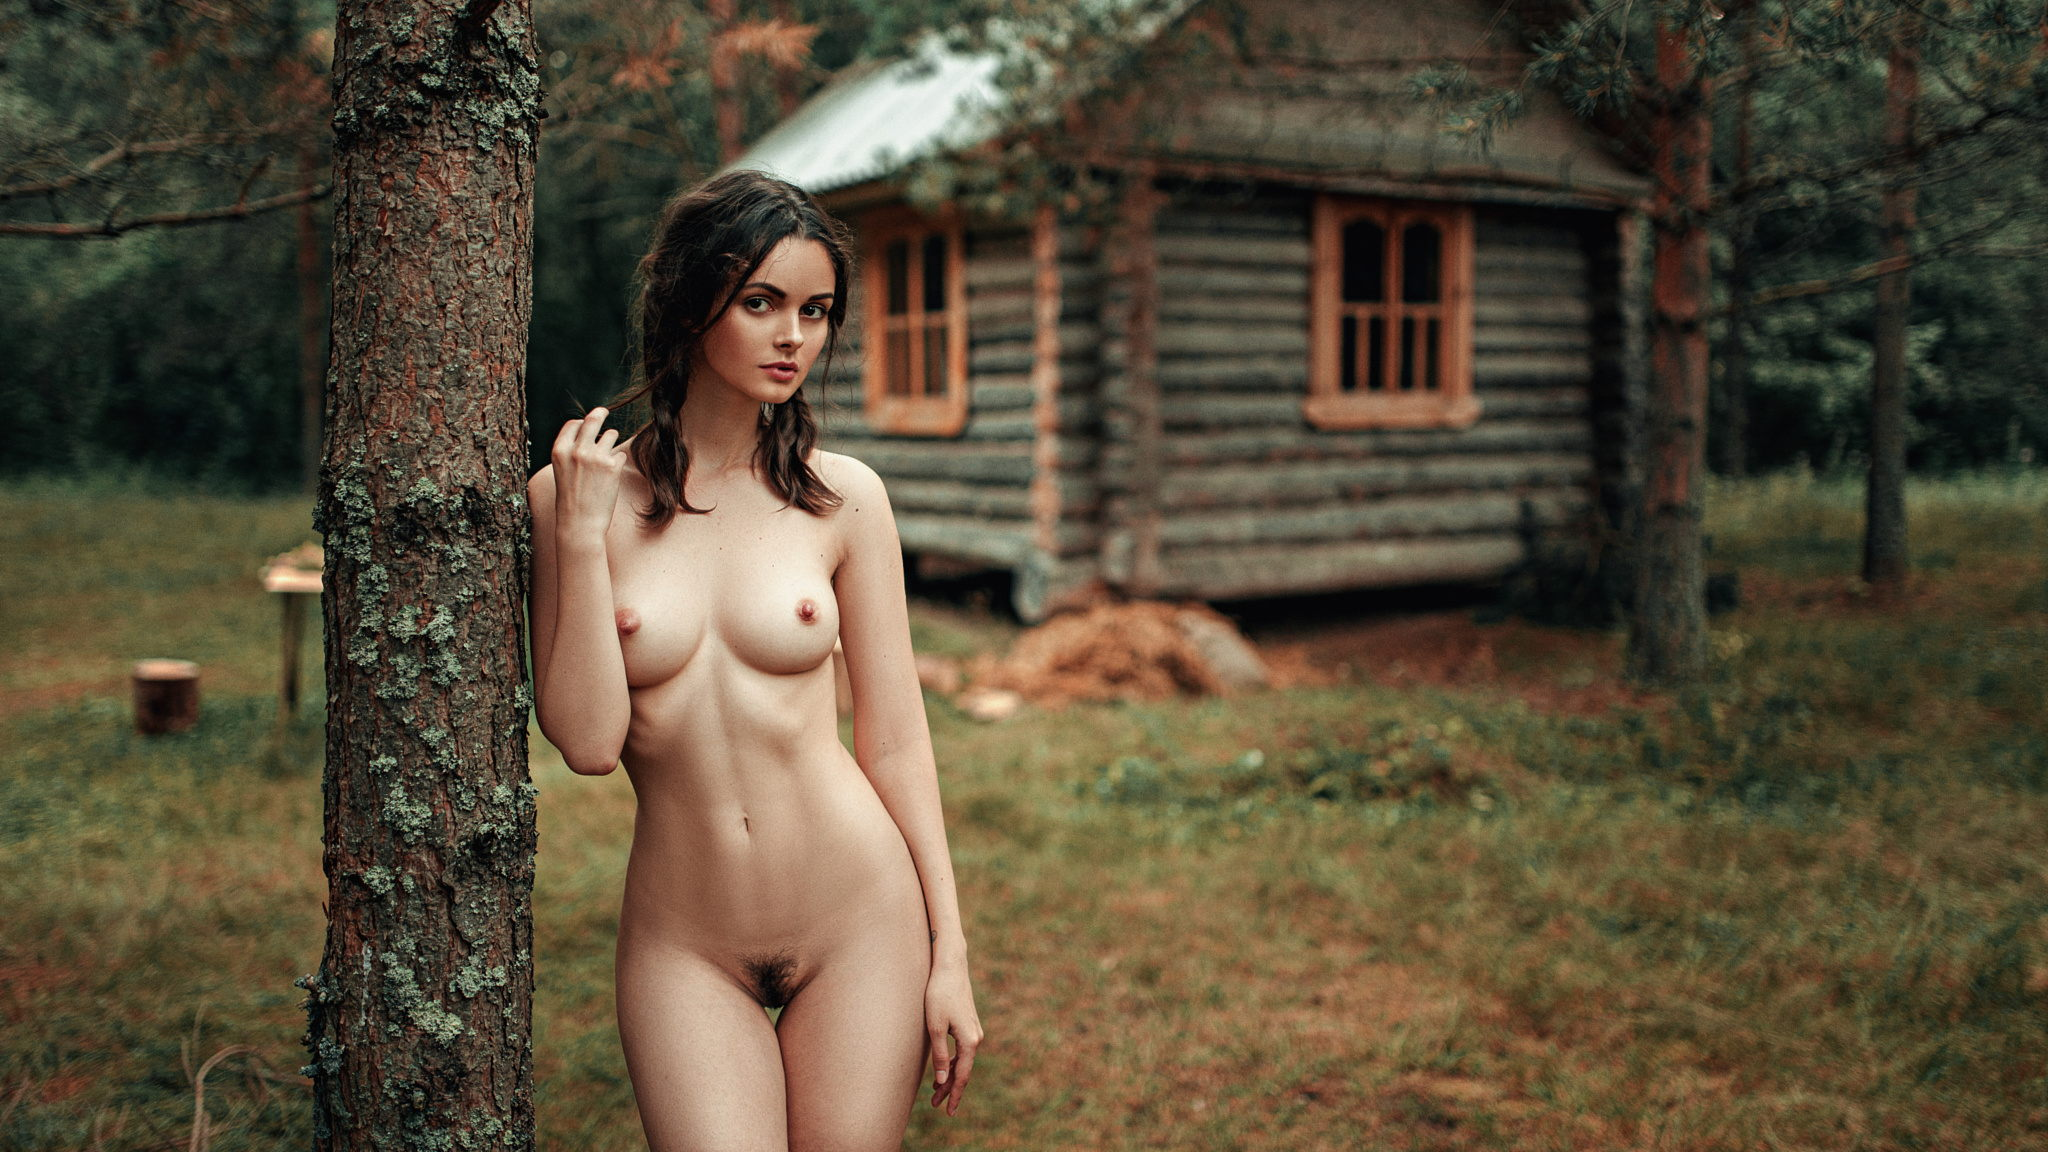 Big tits woods cabin Cabin In The Woods Porn Pic Eporner